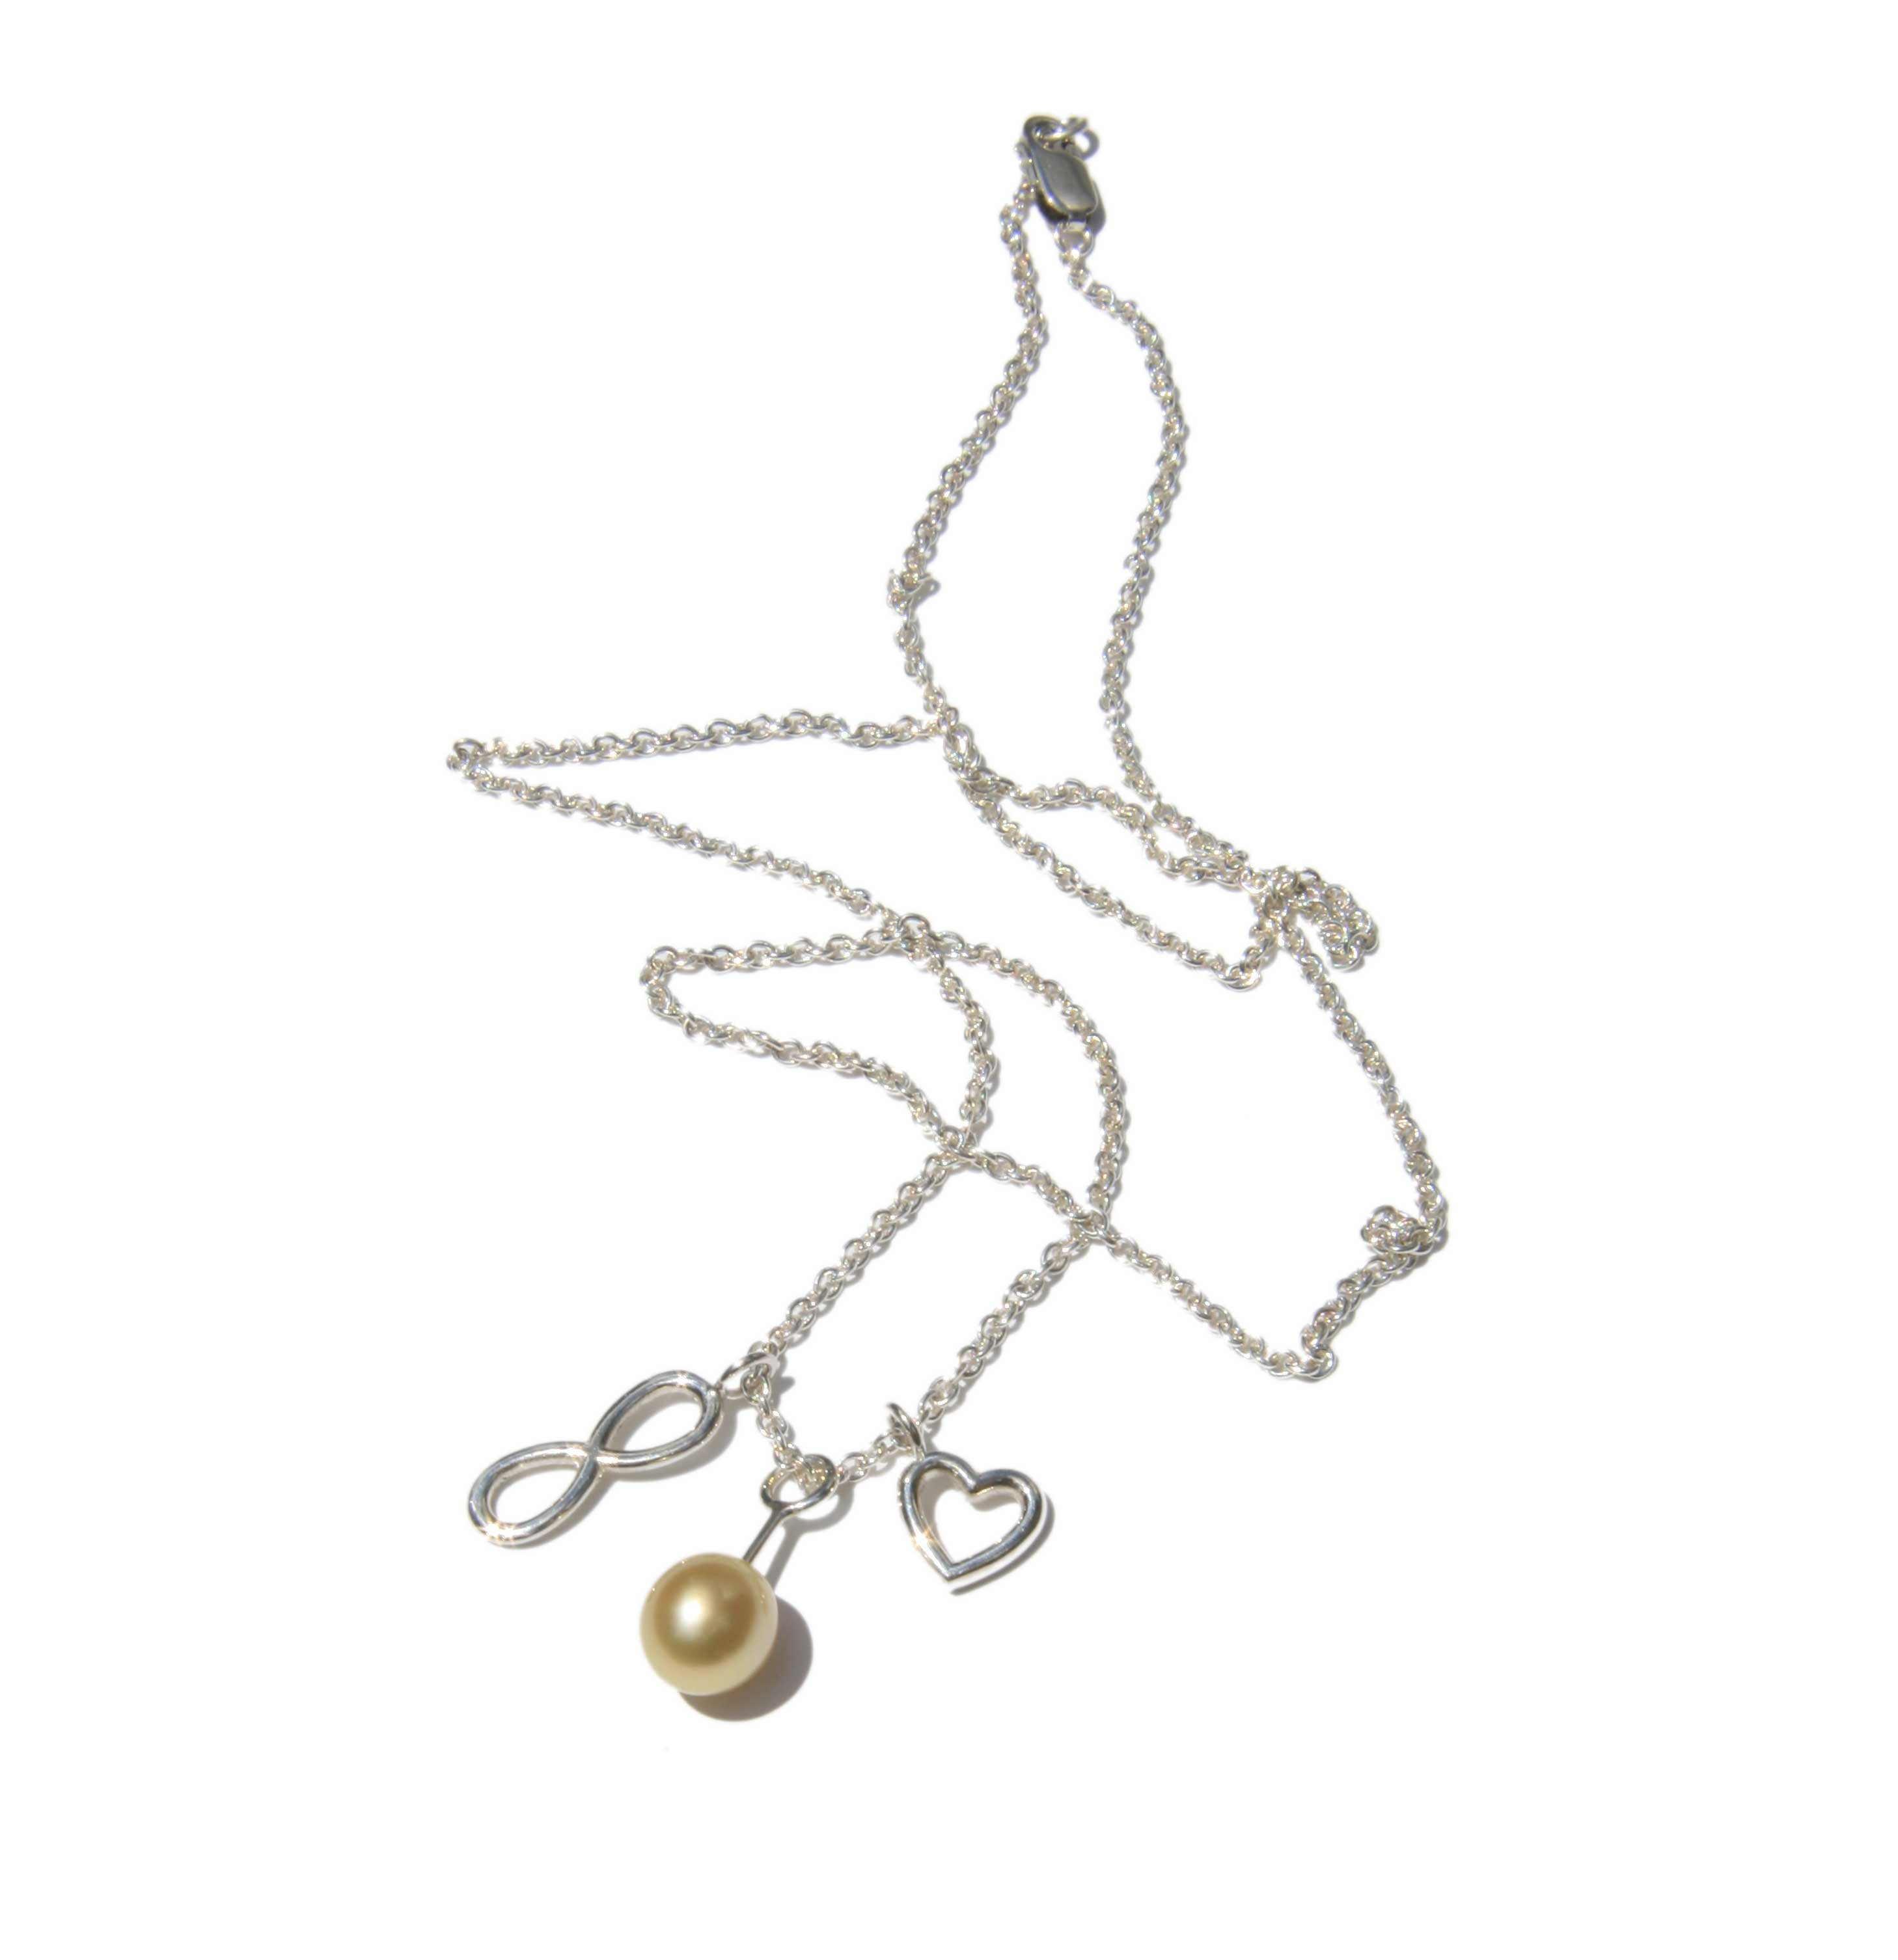 Necklace with yellow pearl and two charms